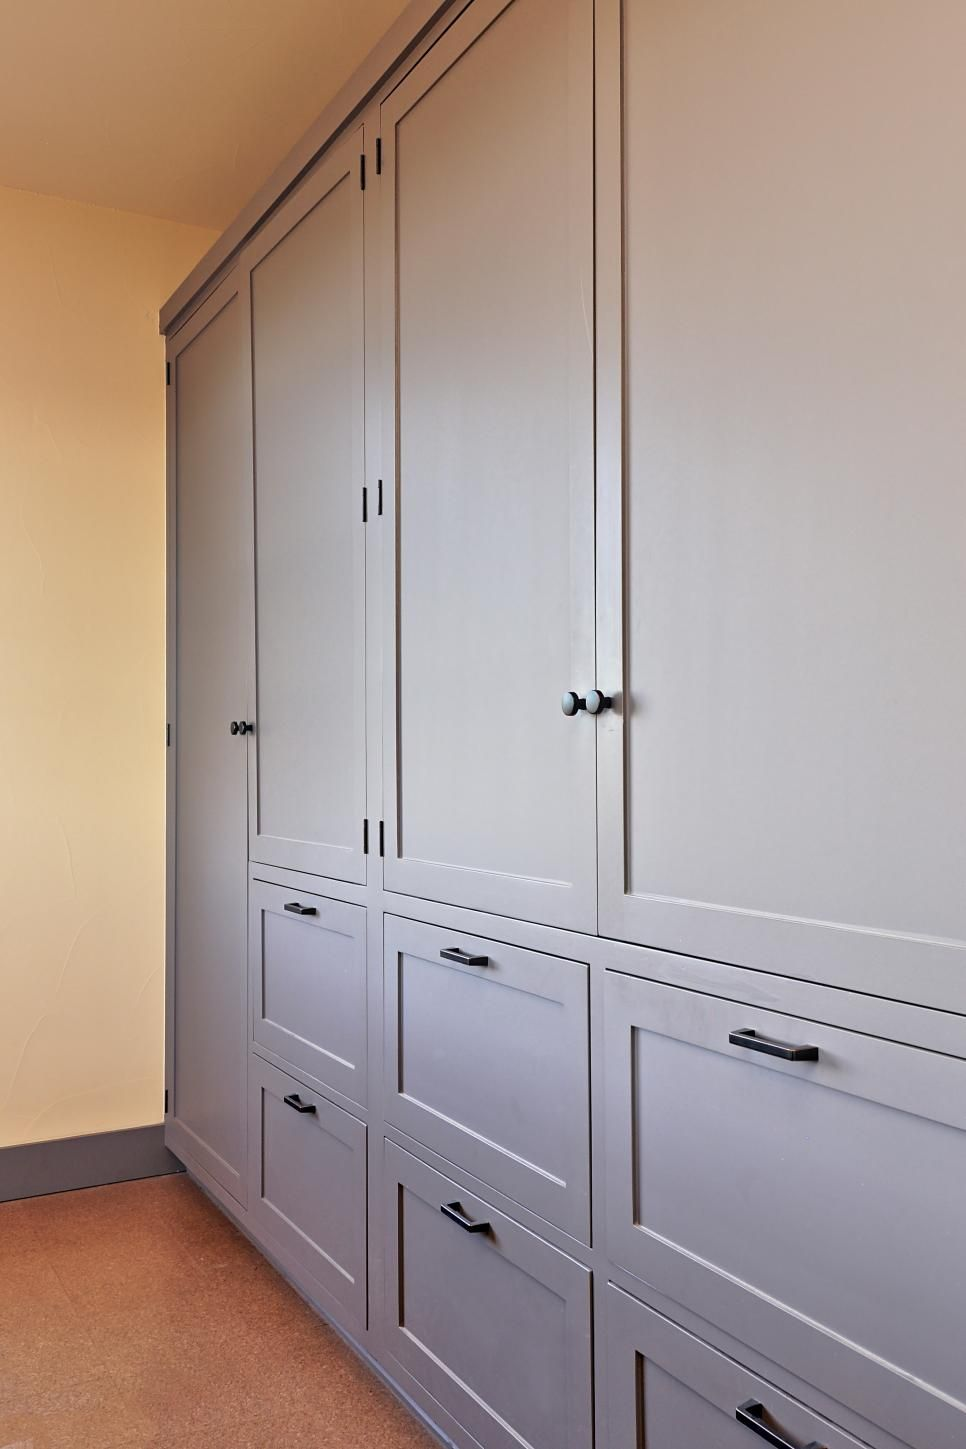 A wall of built in cabinets provides plenty of room to store clothes and accessories in the Small wall cabinets for bedroom